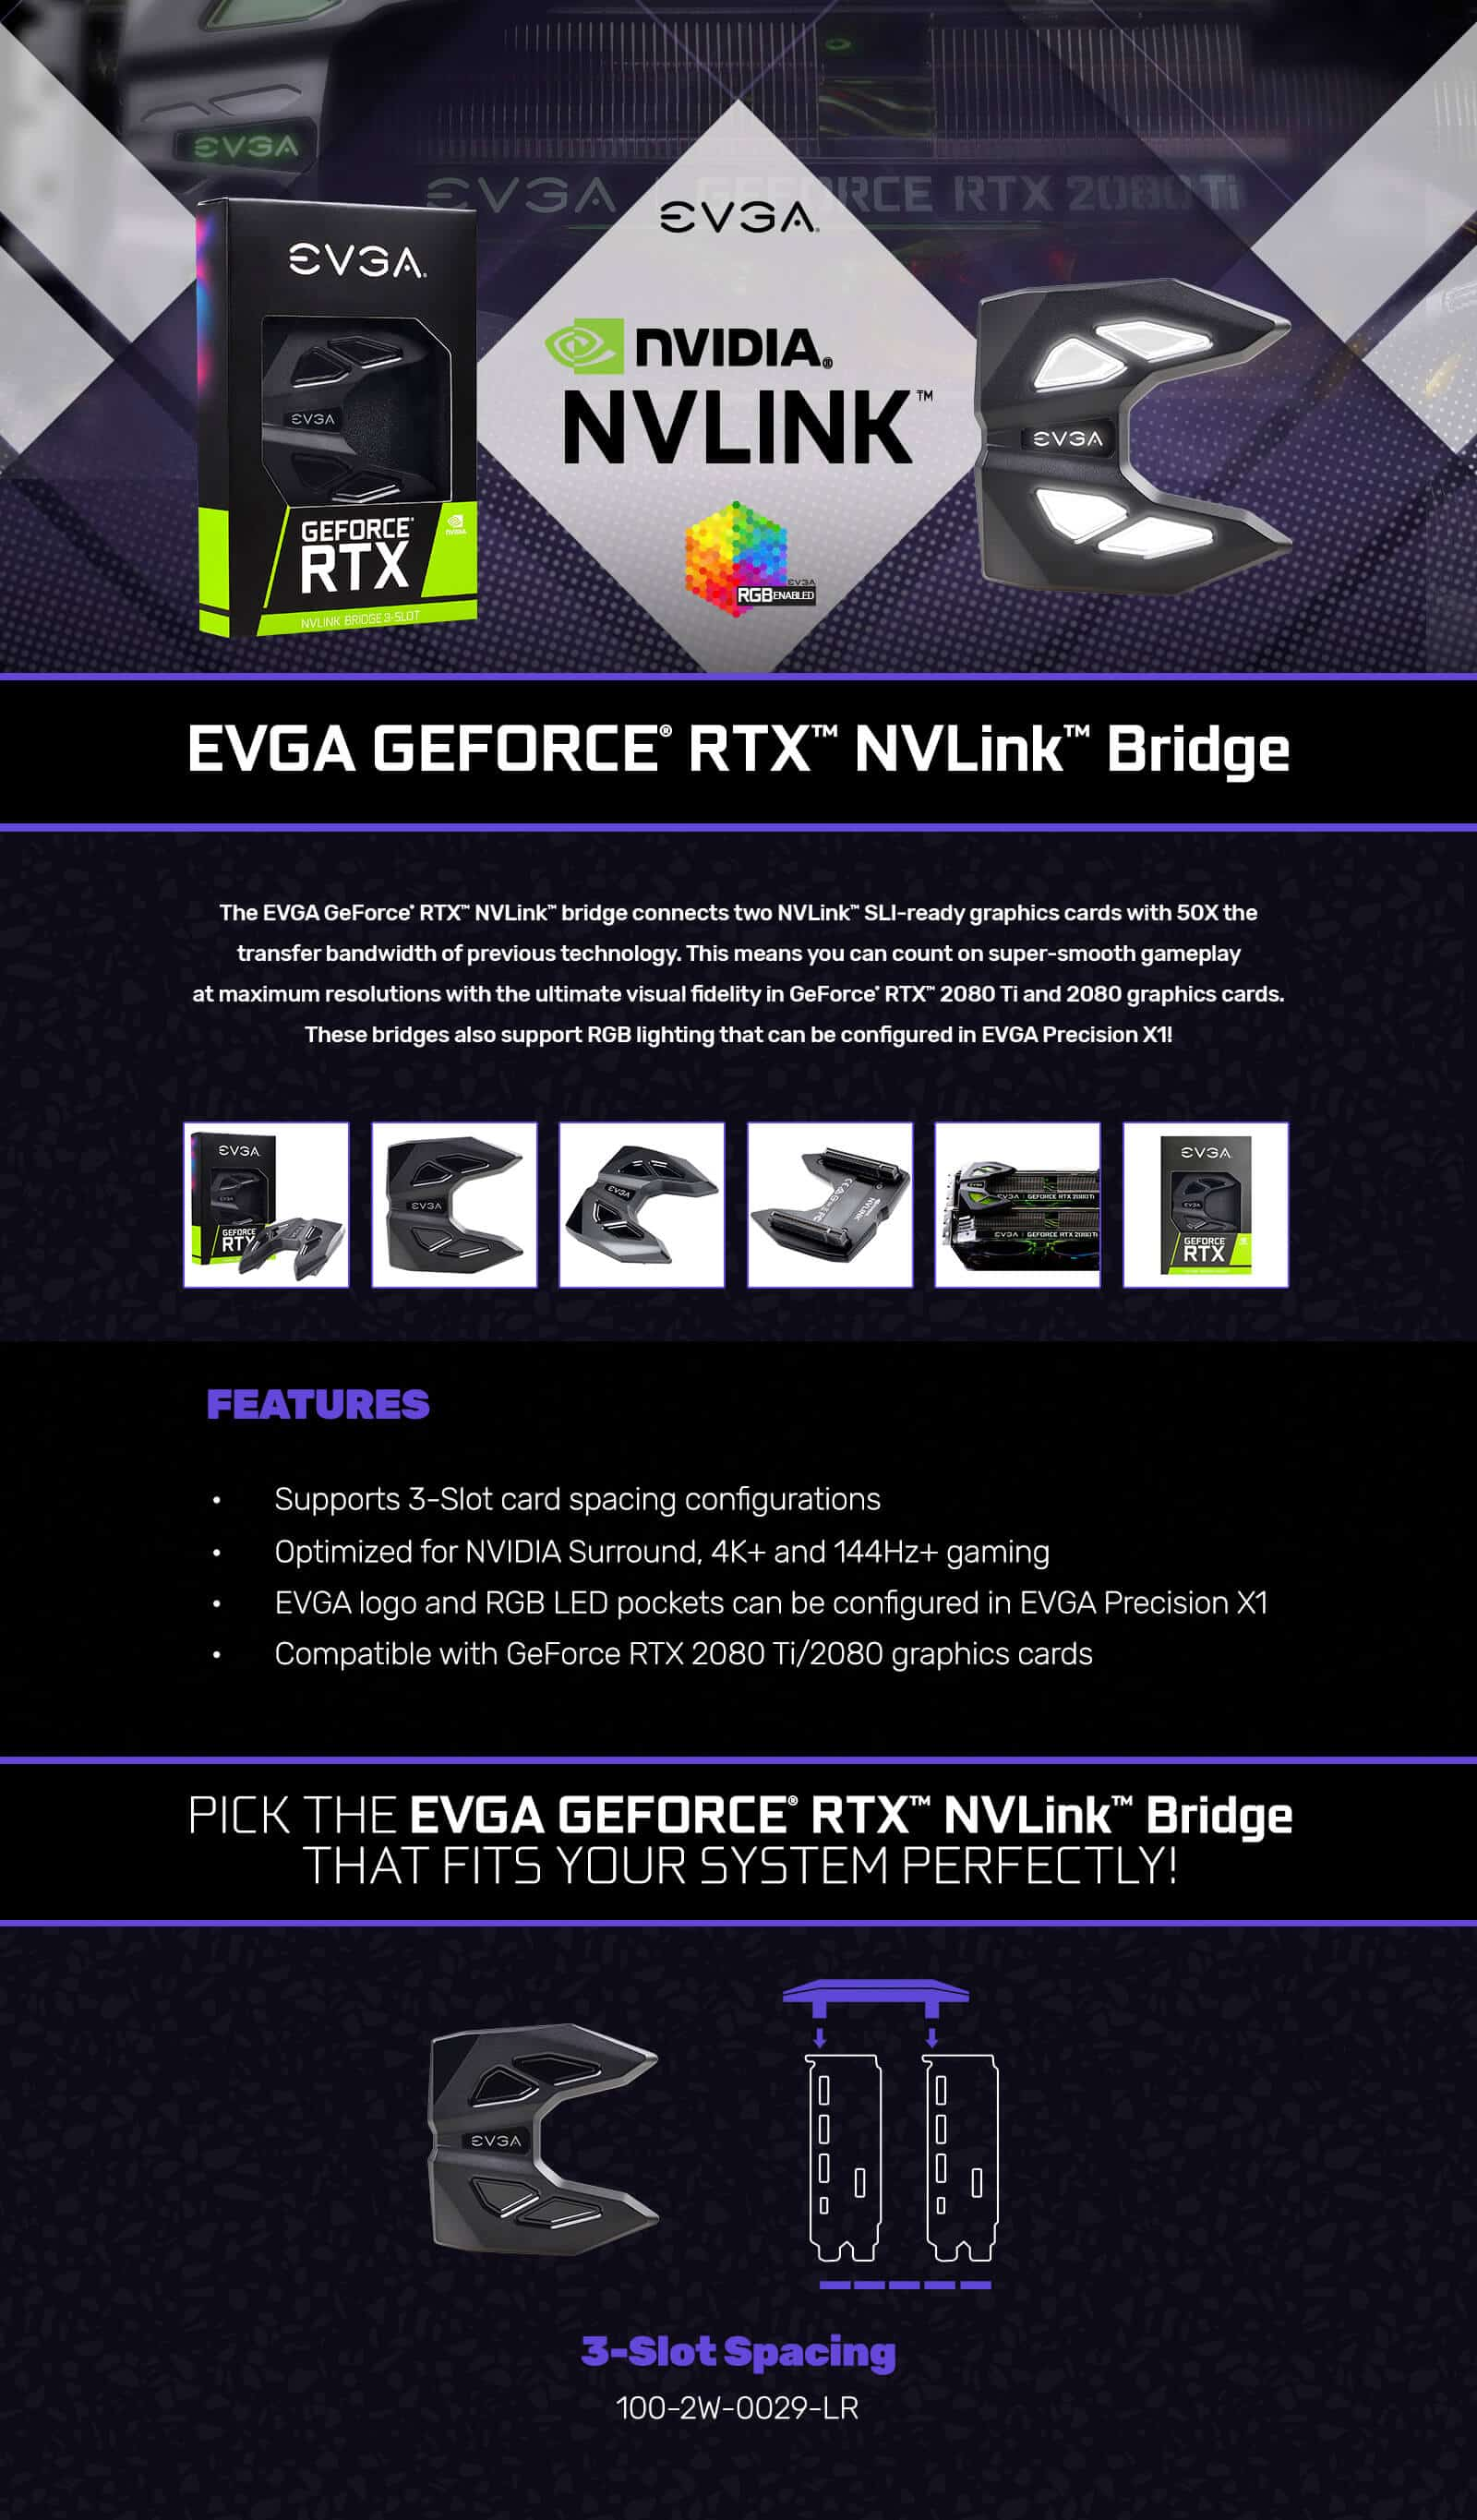 EVGA GeForce RTX NV Link SLI Bridge